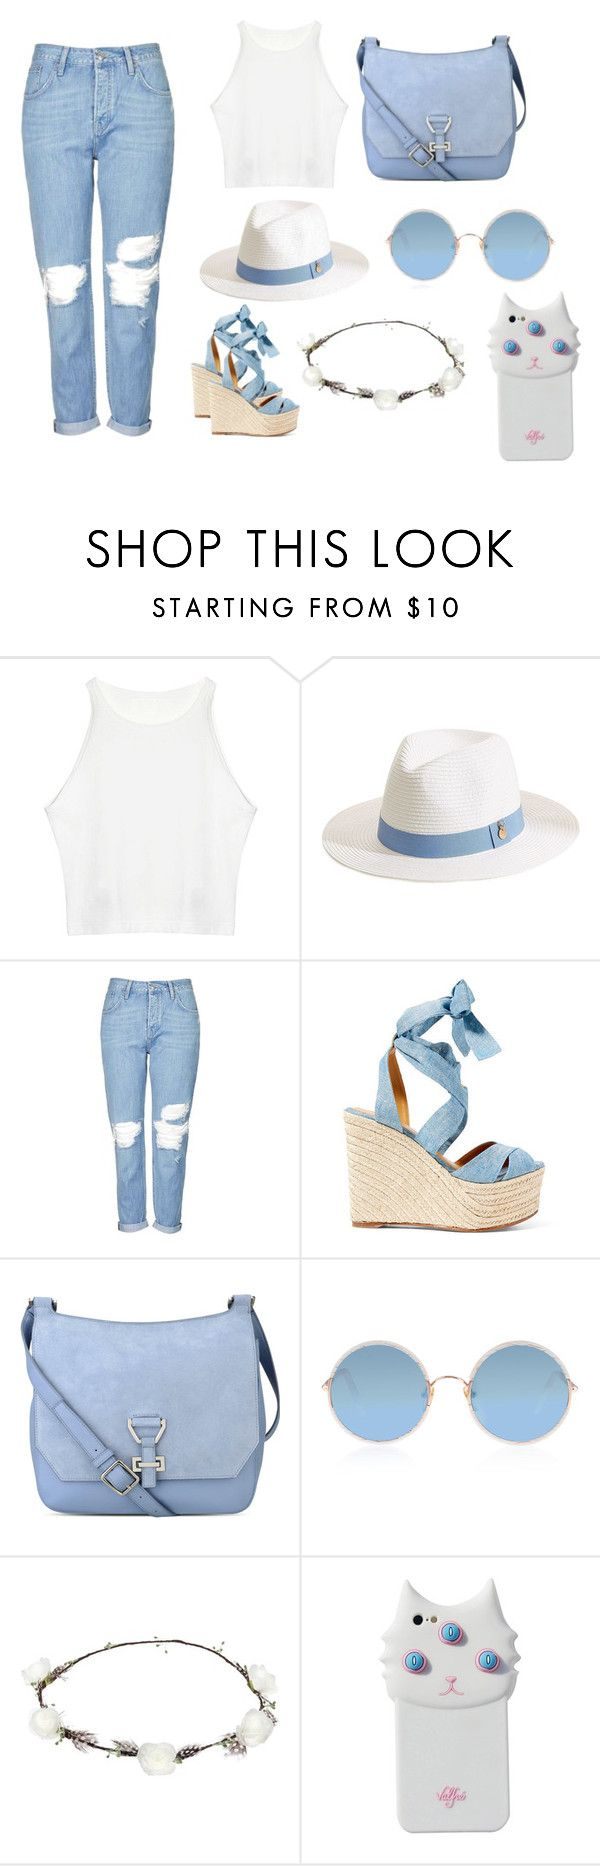 """blue and white hat"" by queensprings010 ❤ liked on Polyvore featuring Melissa Odabash, Topshop, Ralph Lauren, Nine West, Sunday Somewhere, Lipsy and Valfré"